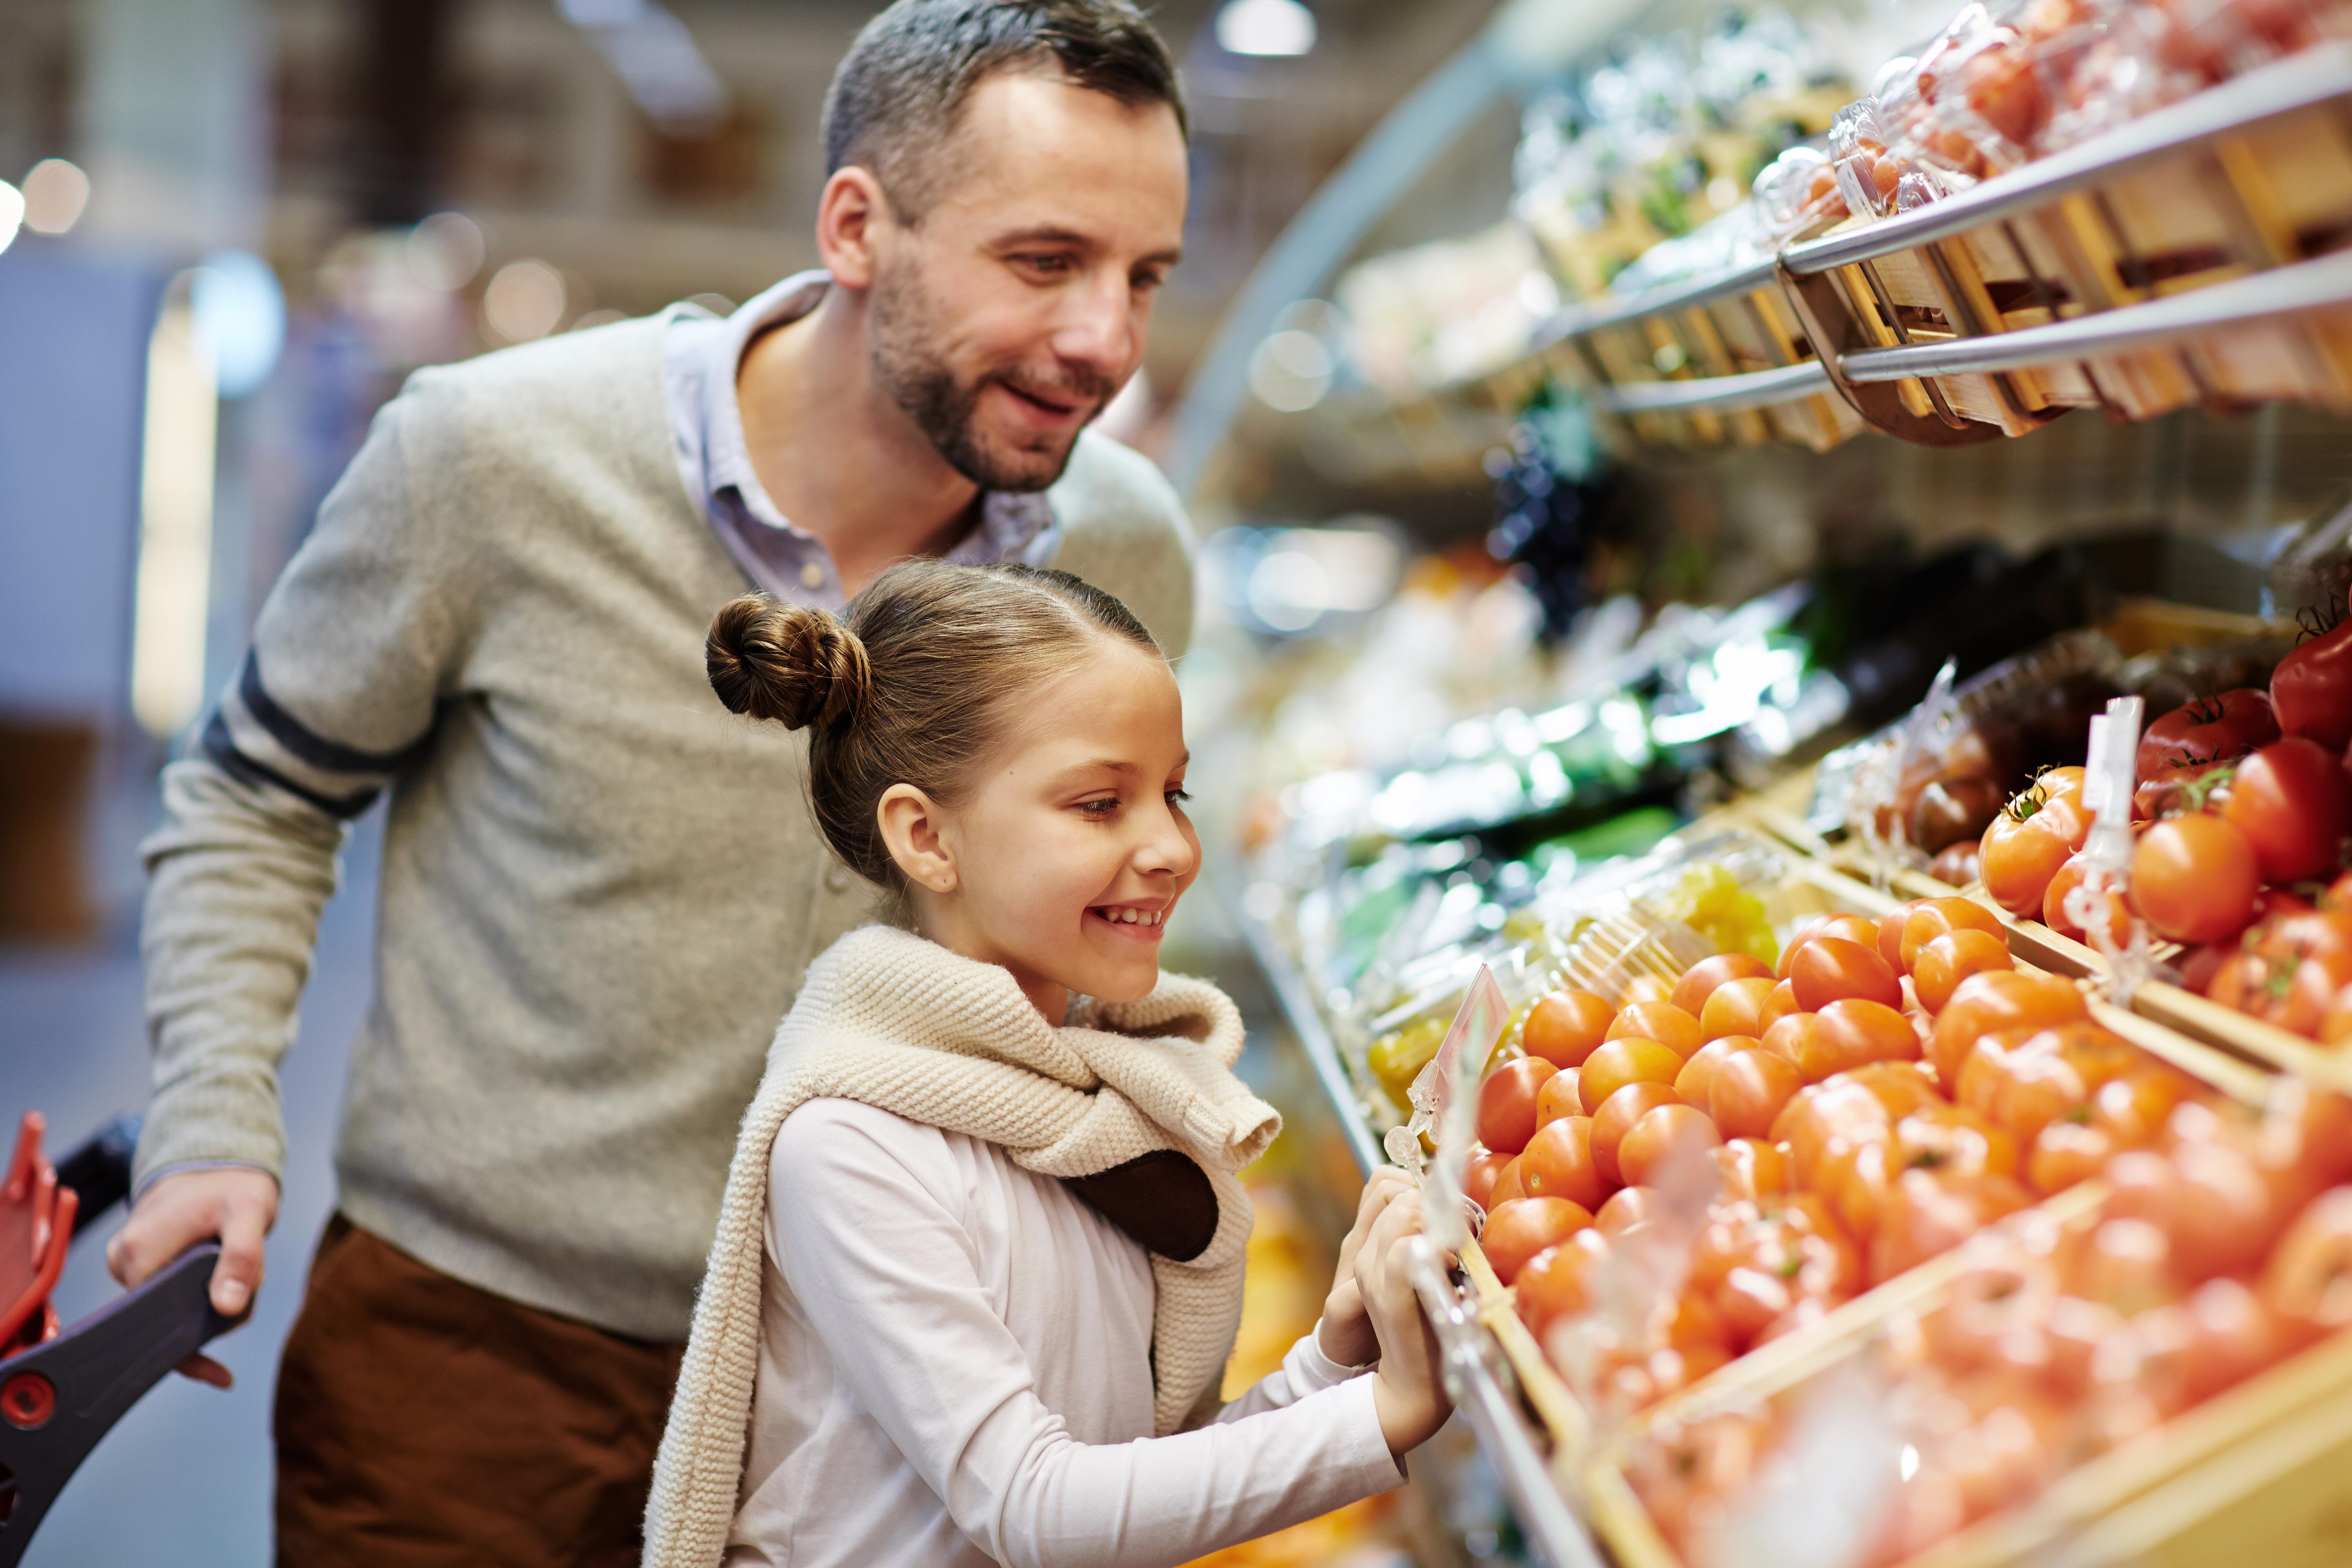 Besides food, grocery trips usually bring home a host of unwelcome chemicals that we are better off avoiding. (Pressmaster/Shutterstock)